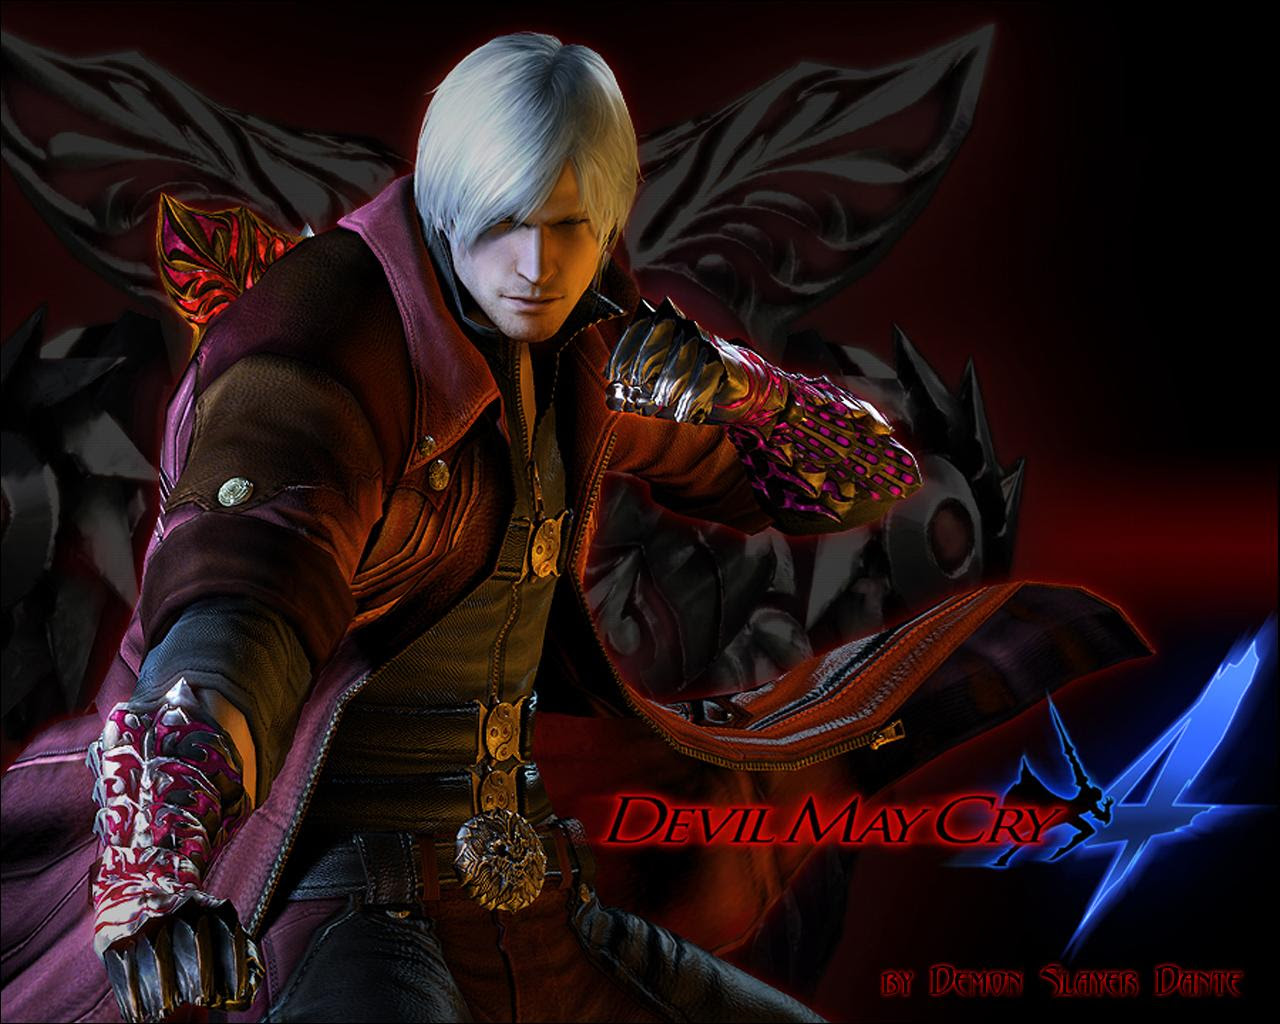 Hd Quality Devil May Cry 4 Cool Devil May Cry 4 Wallpapers